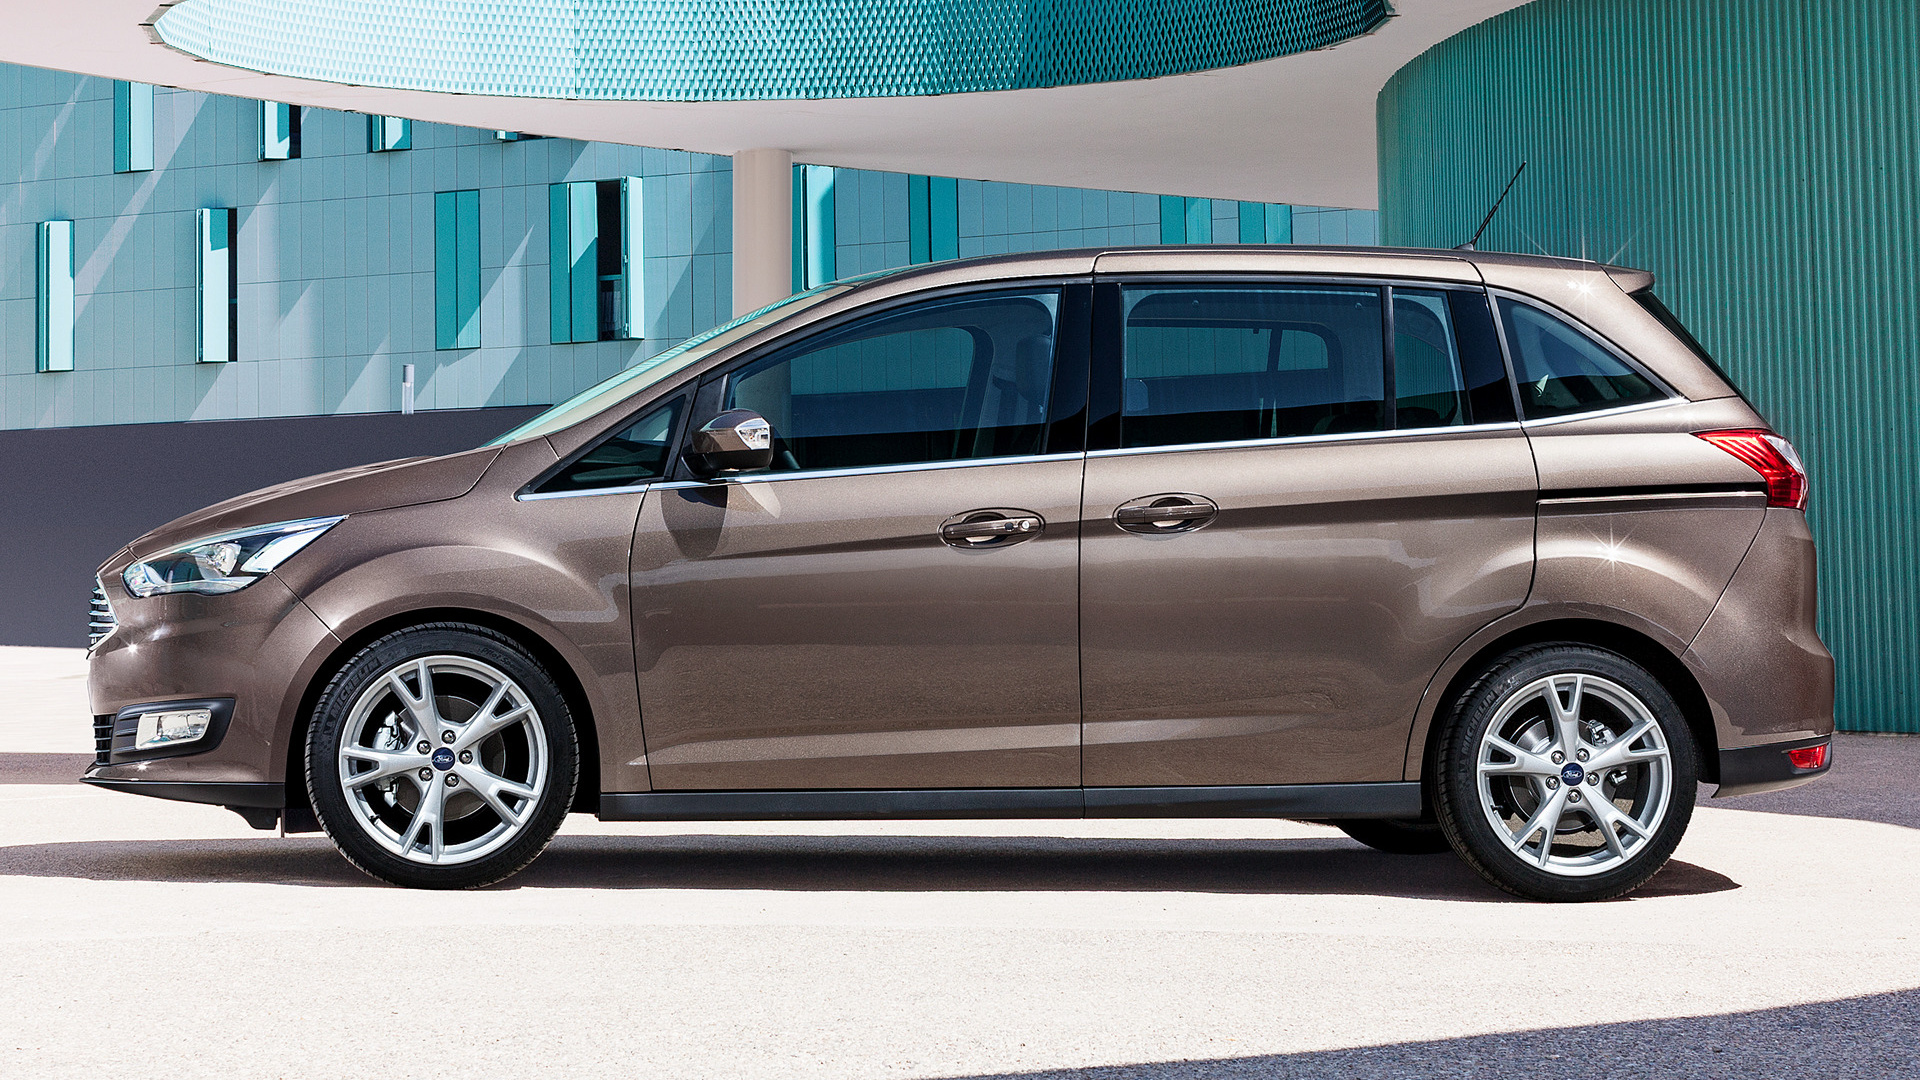 Ford C Max Grand 2017 >> Ford Grand C-MAX (2015) Wallpapers and HD Images - Car Pixel